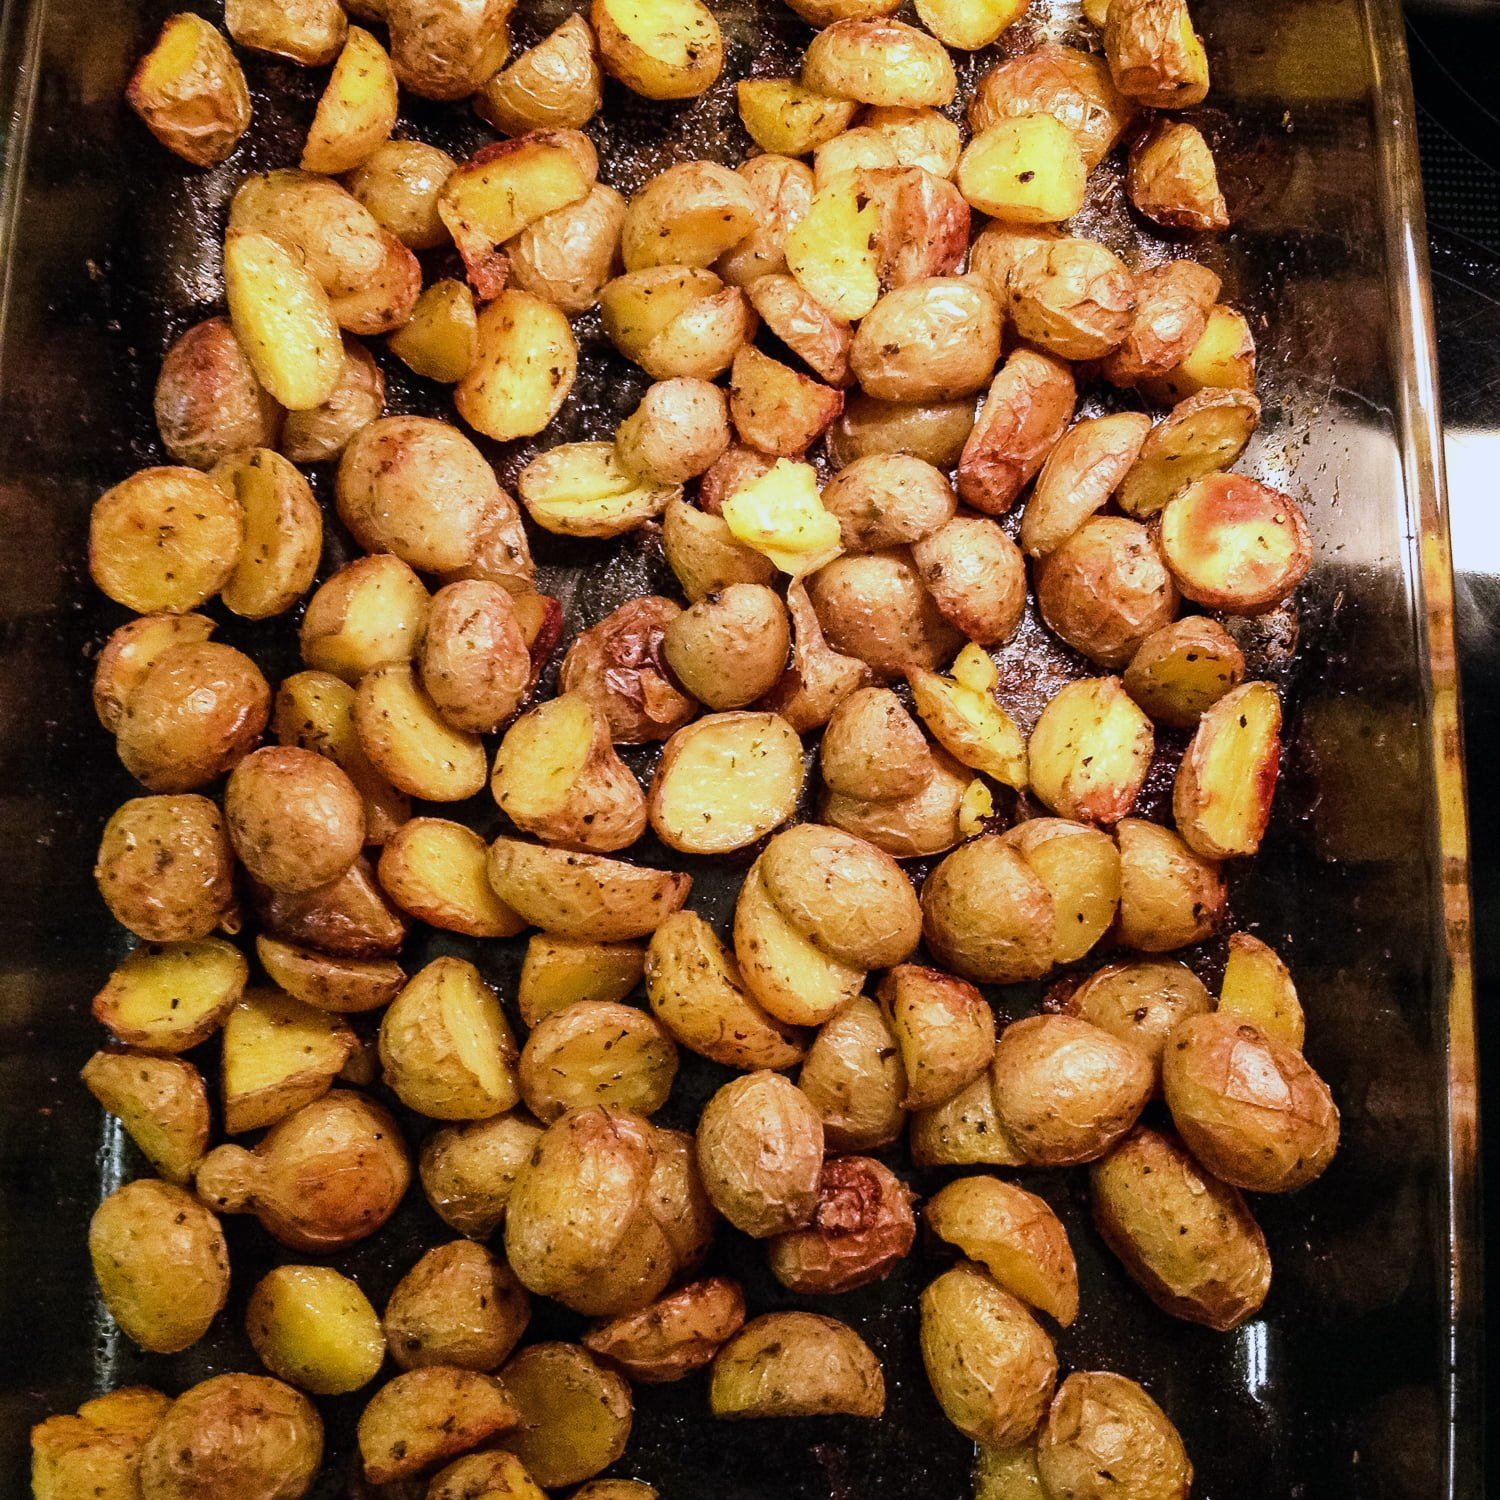 Roasted potatoes in a glass pan